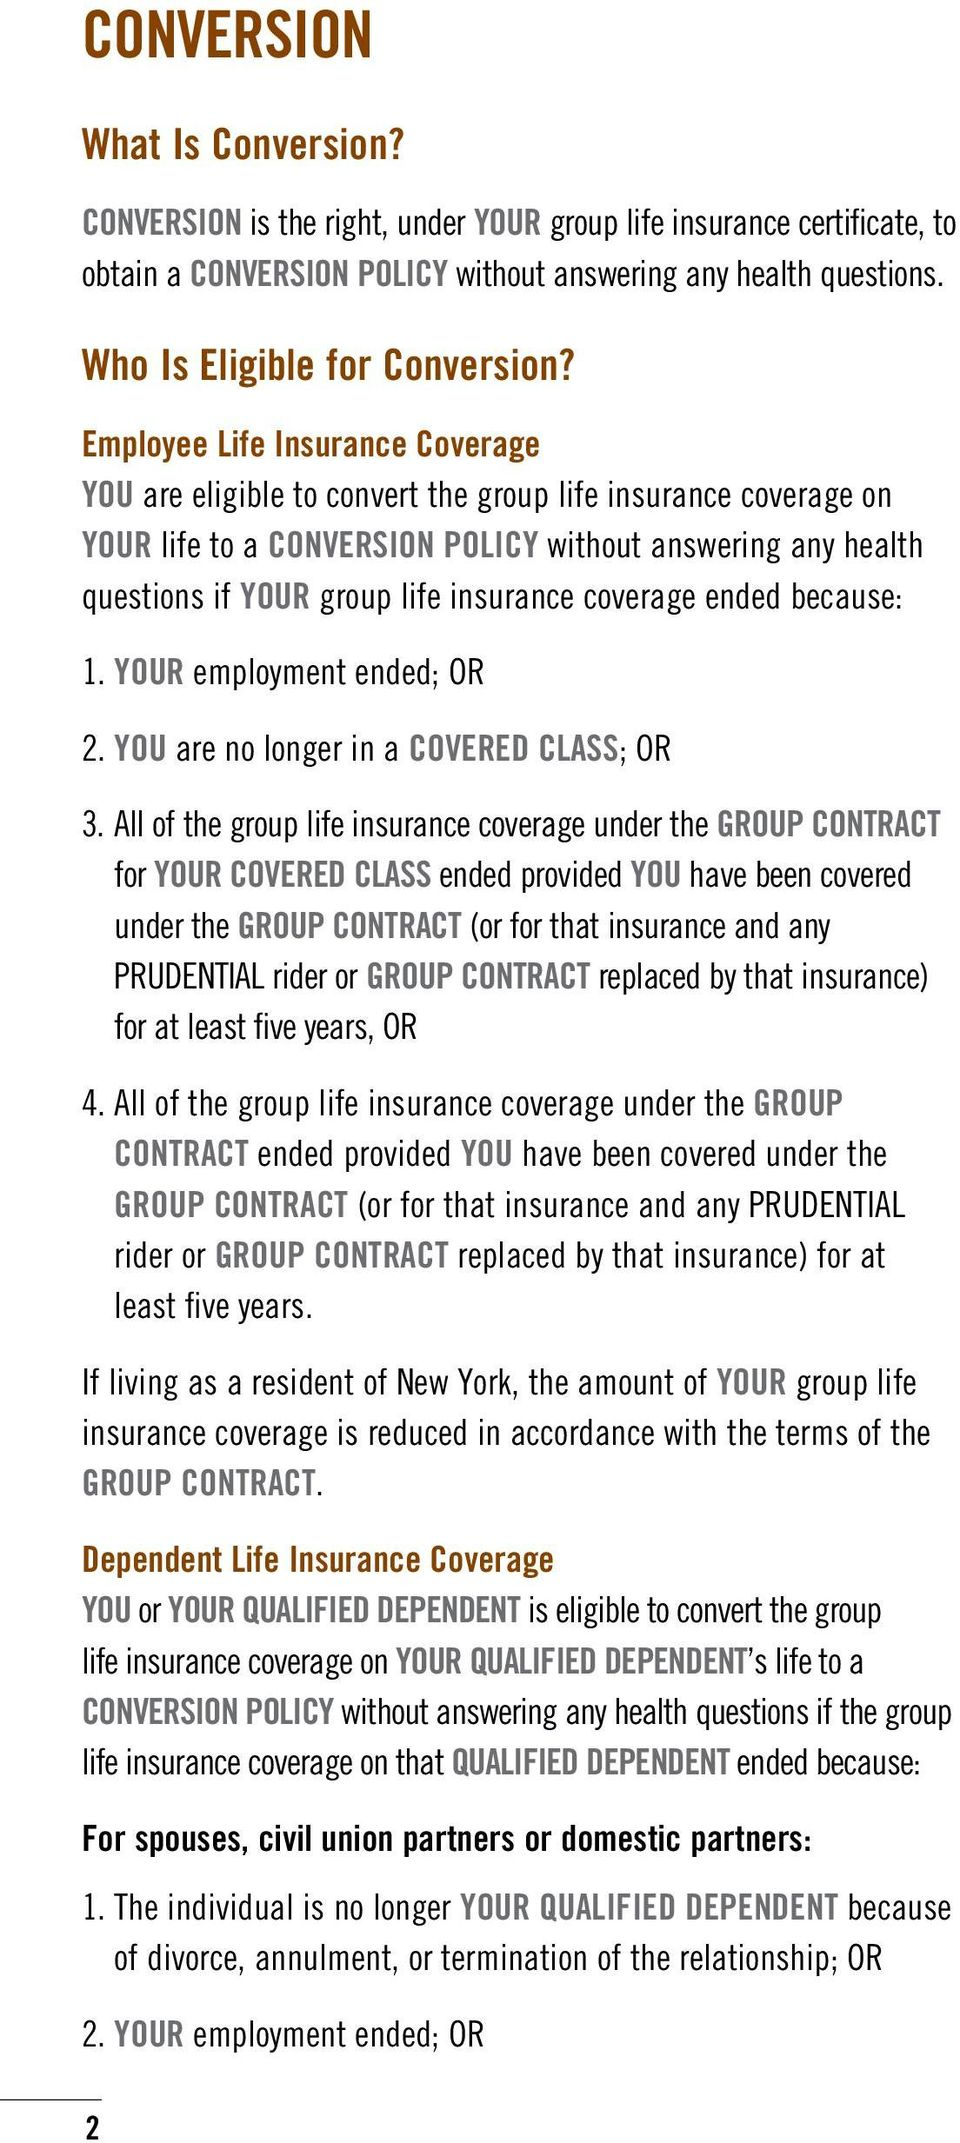 Employee Life Insurance Coverage YOU are eligible to convert the group life insurance coverage on YOUR life to a CONVERSION POLICY without answering any health questions if YOUR group life insurance